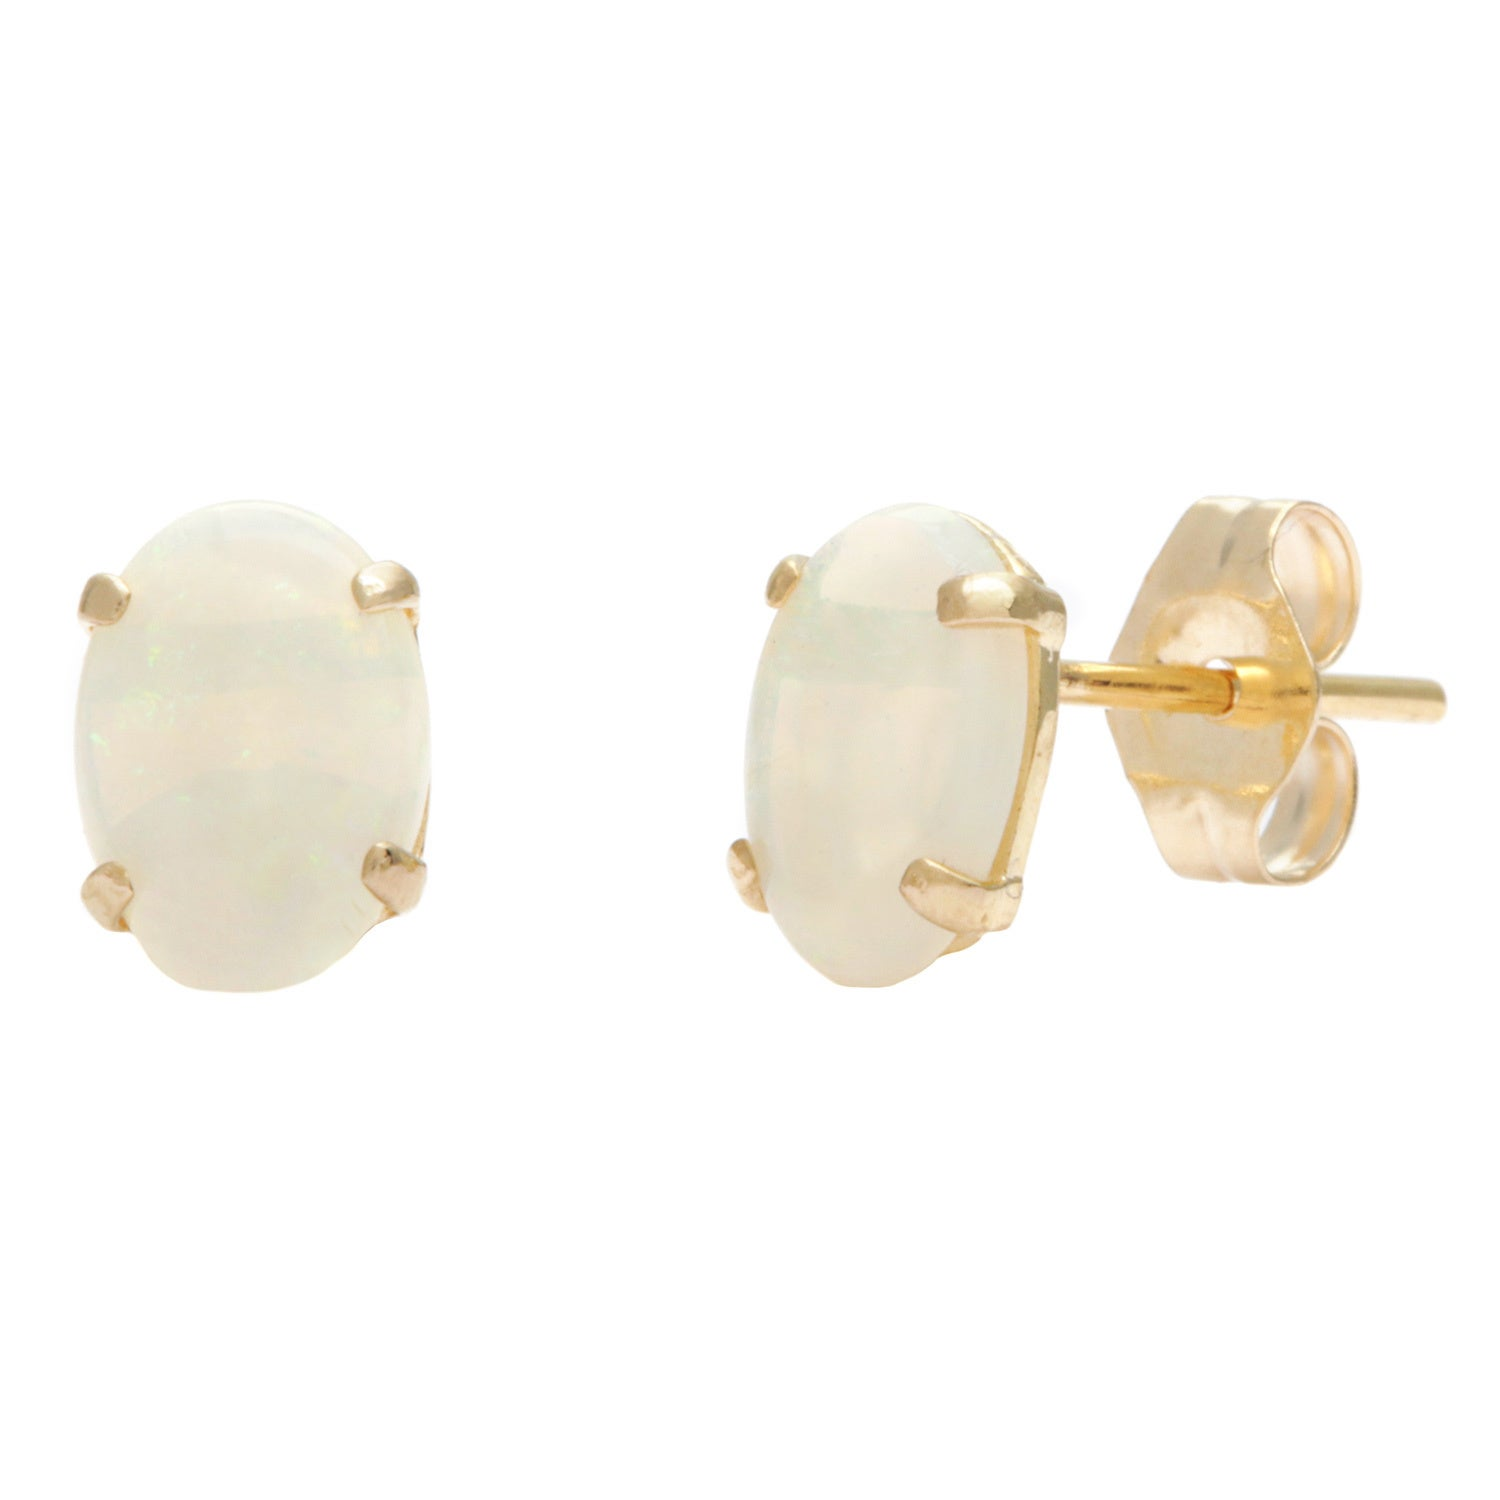 stud jewelry mm com gold set earring opal studs dp amazon yellow prong natural genuine in